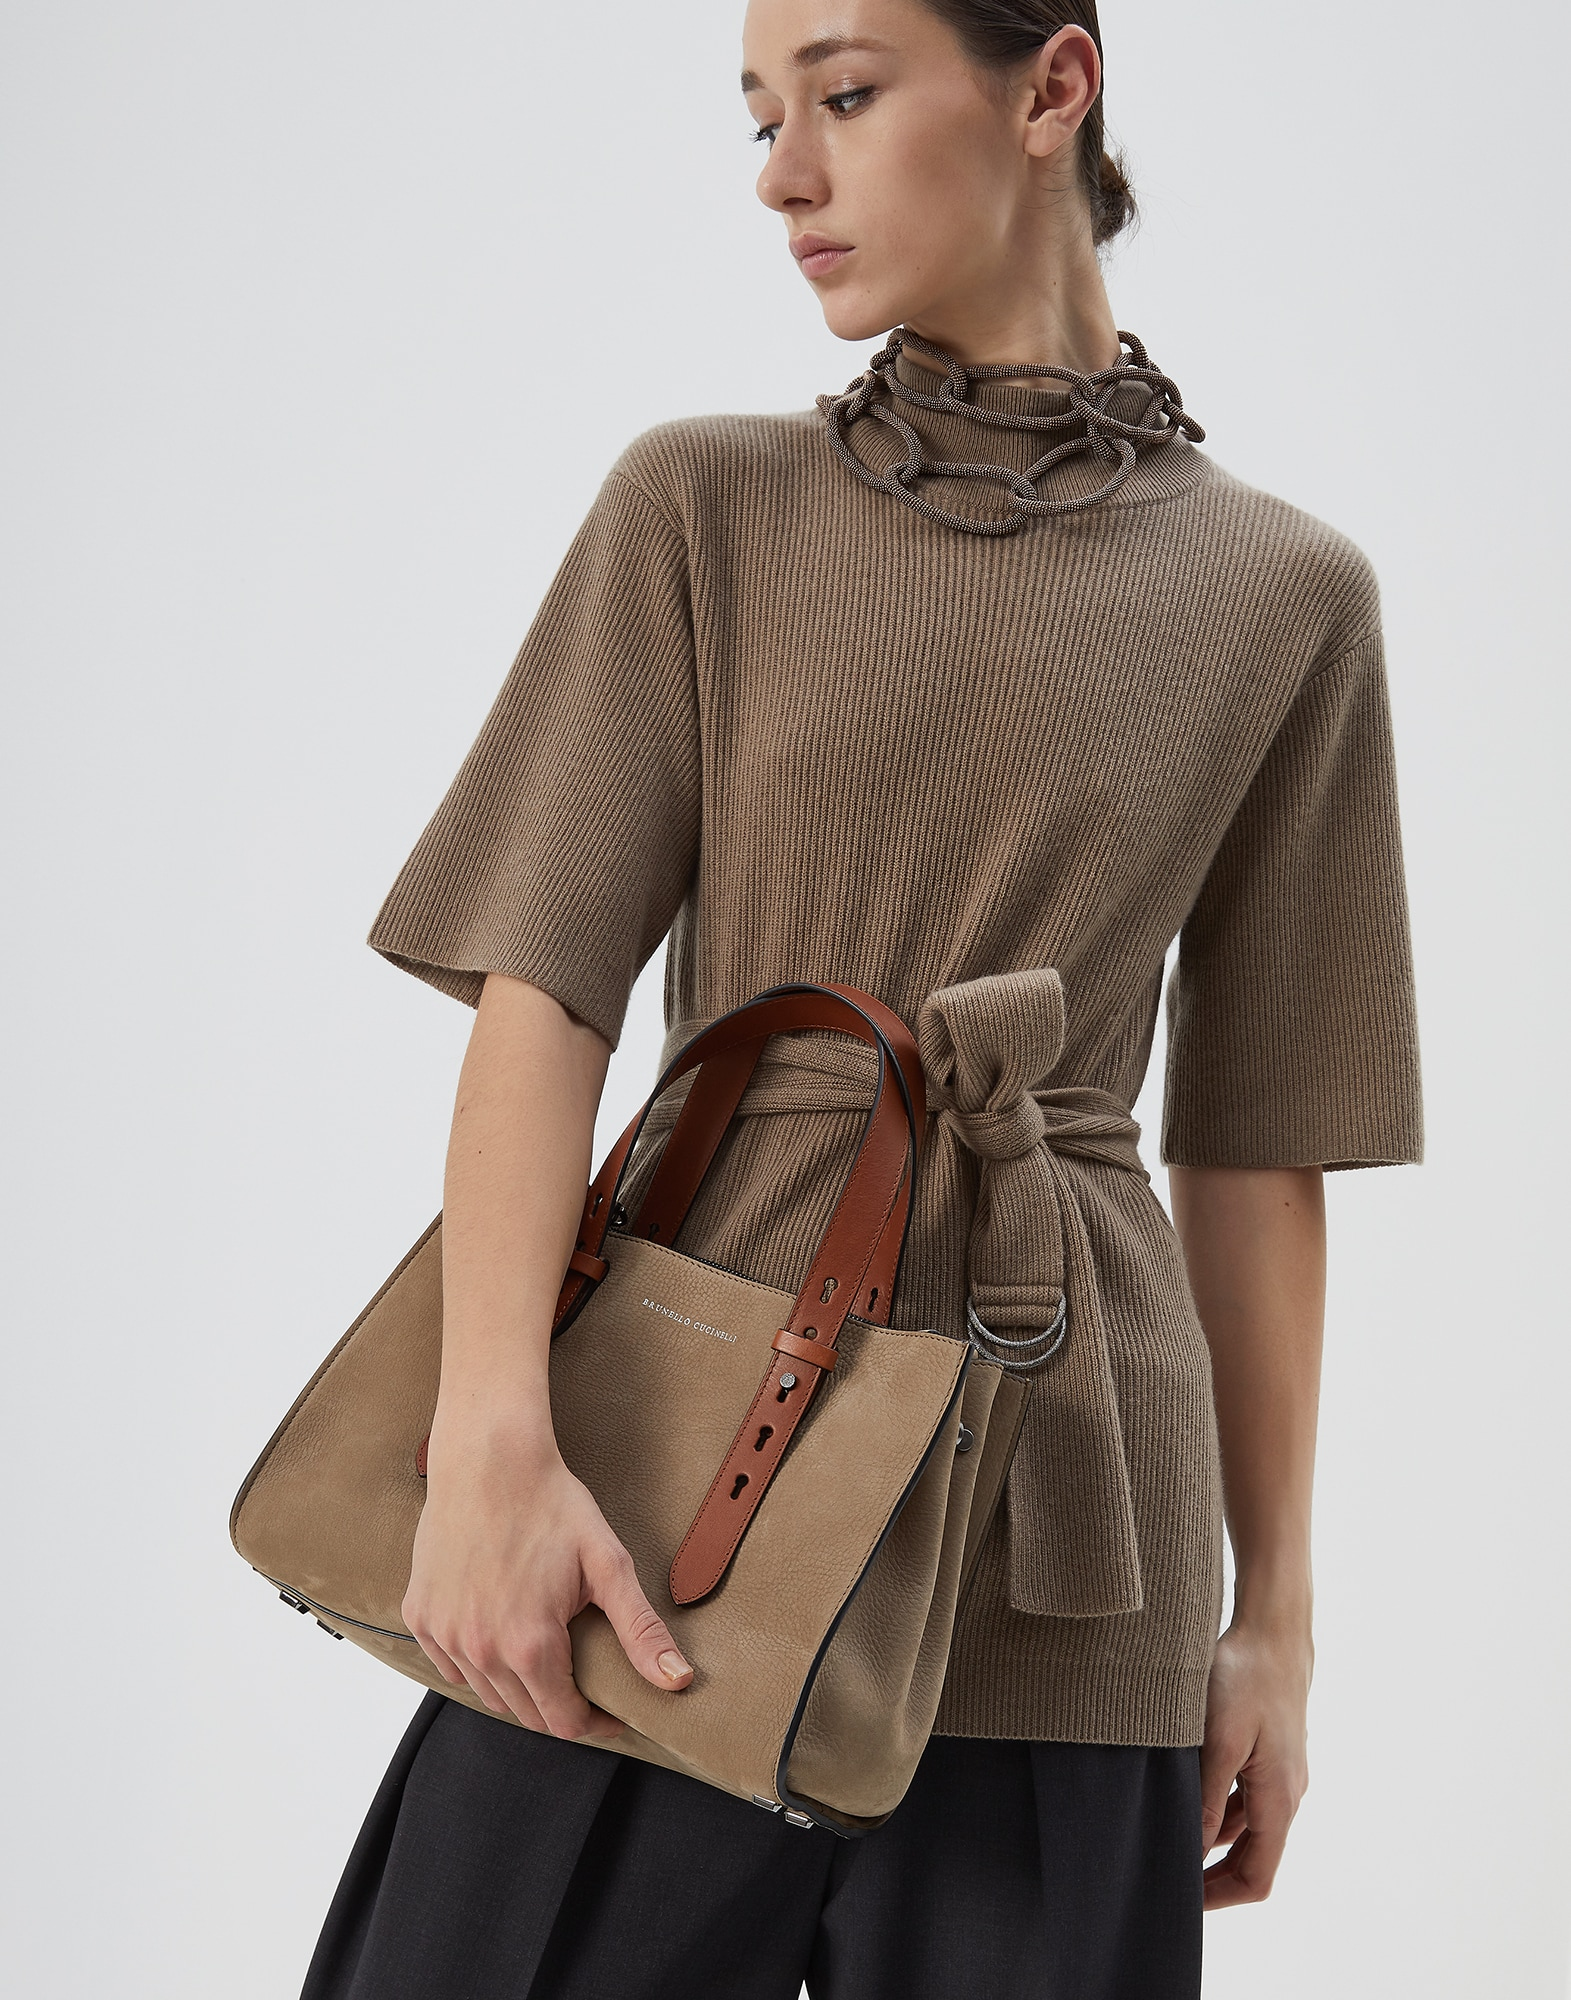 Shopper Bag Hazelnut Woman 4 - Brunello Cucinelli